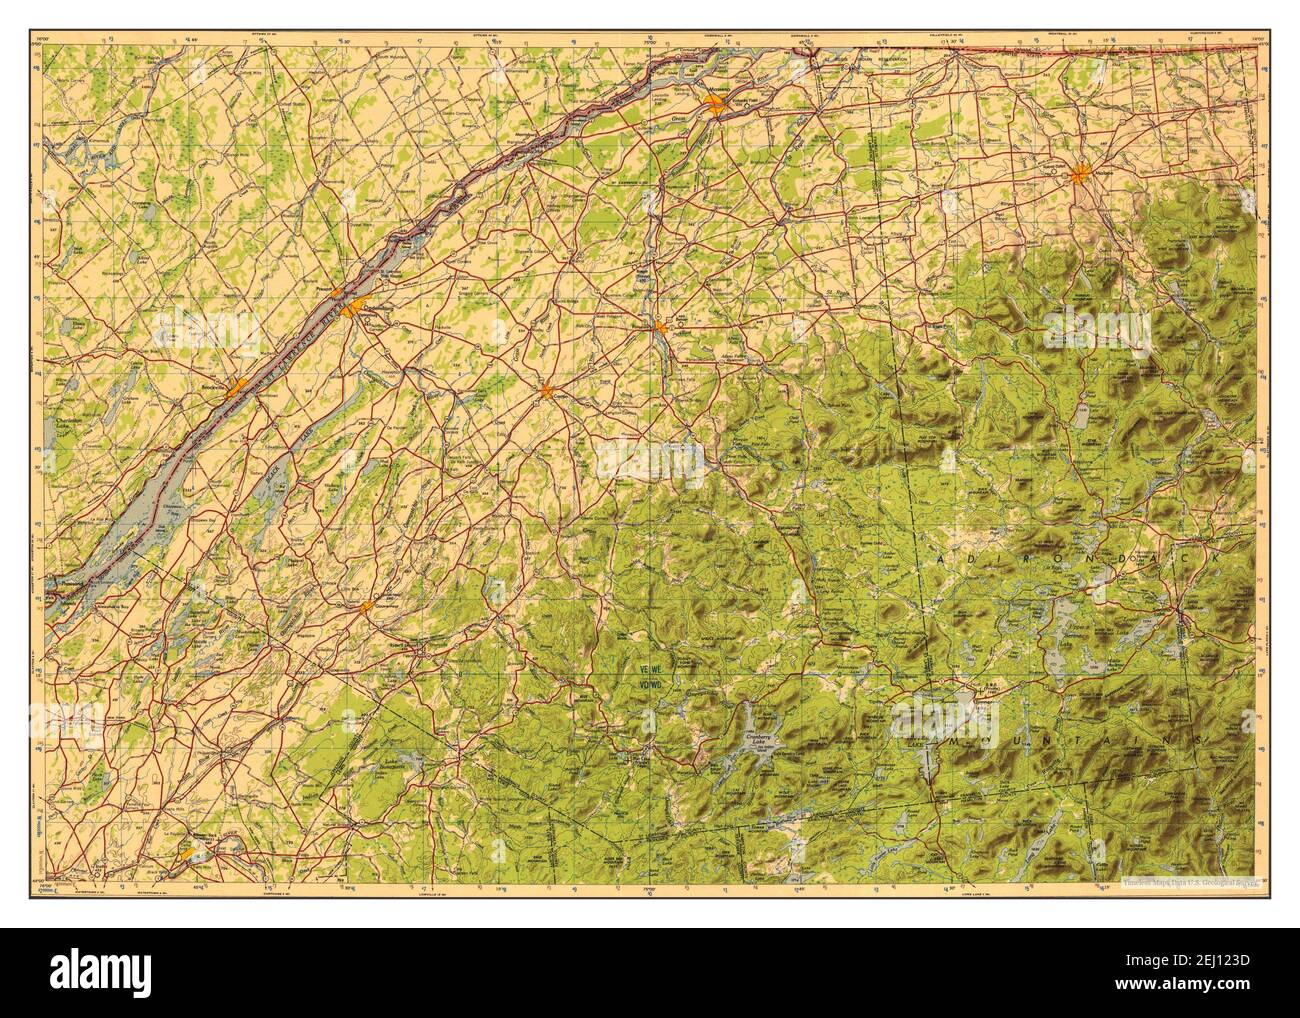 Ogdensburg, New York, map 1951, 1:250000, United States of America by Timeless Maps, data U.S. Geological Survey Stock Photo